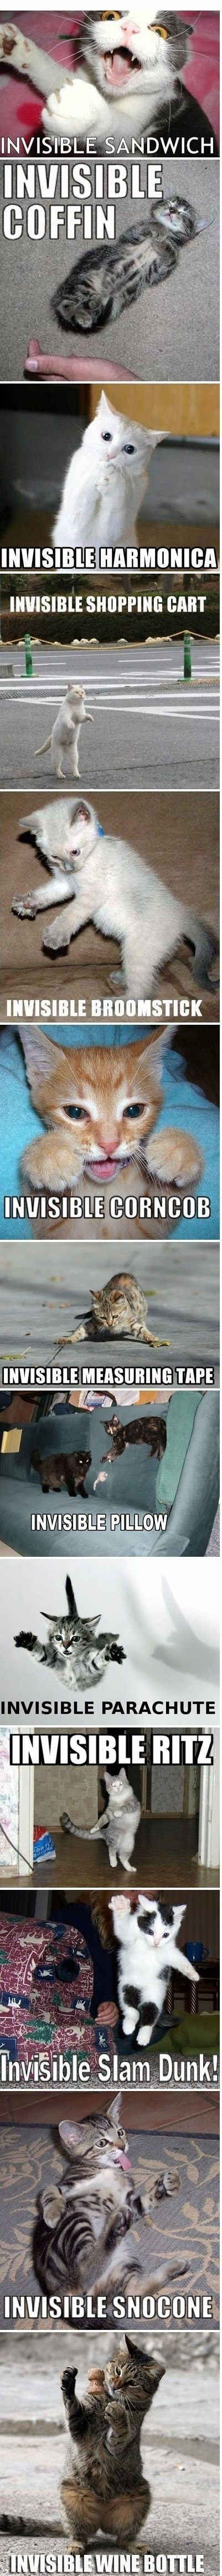 Invisible cat. So cute. Haha!! I thought of Johnny Cat.  :)